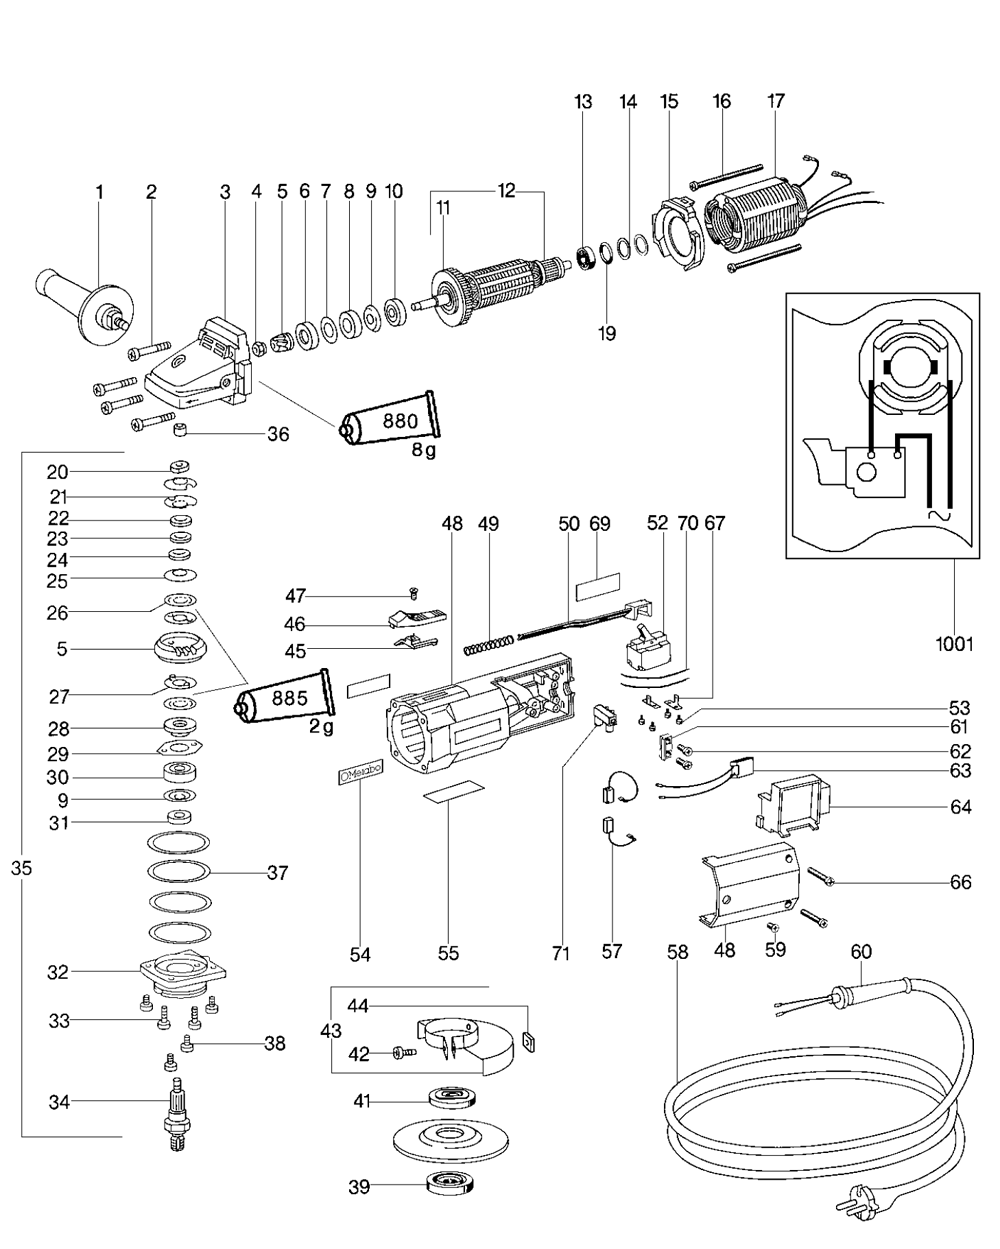 Metabo Wiring Diagram Source Craftsman Skill Saw Parts Replacement On